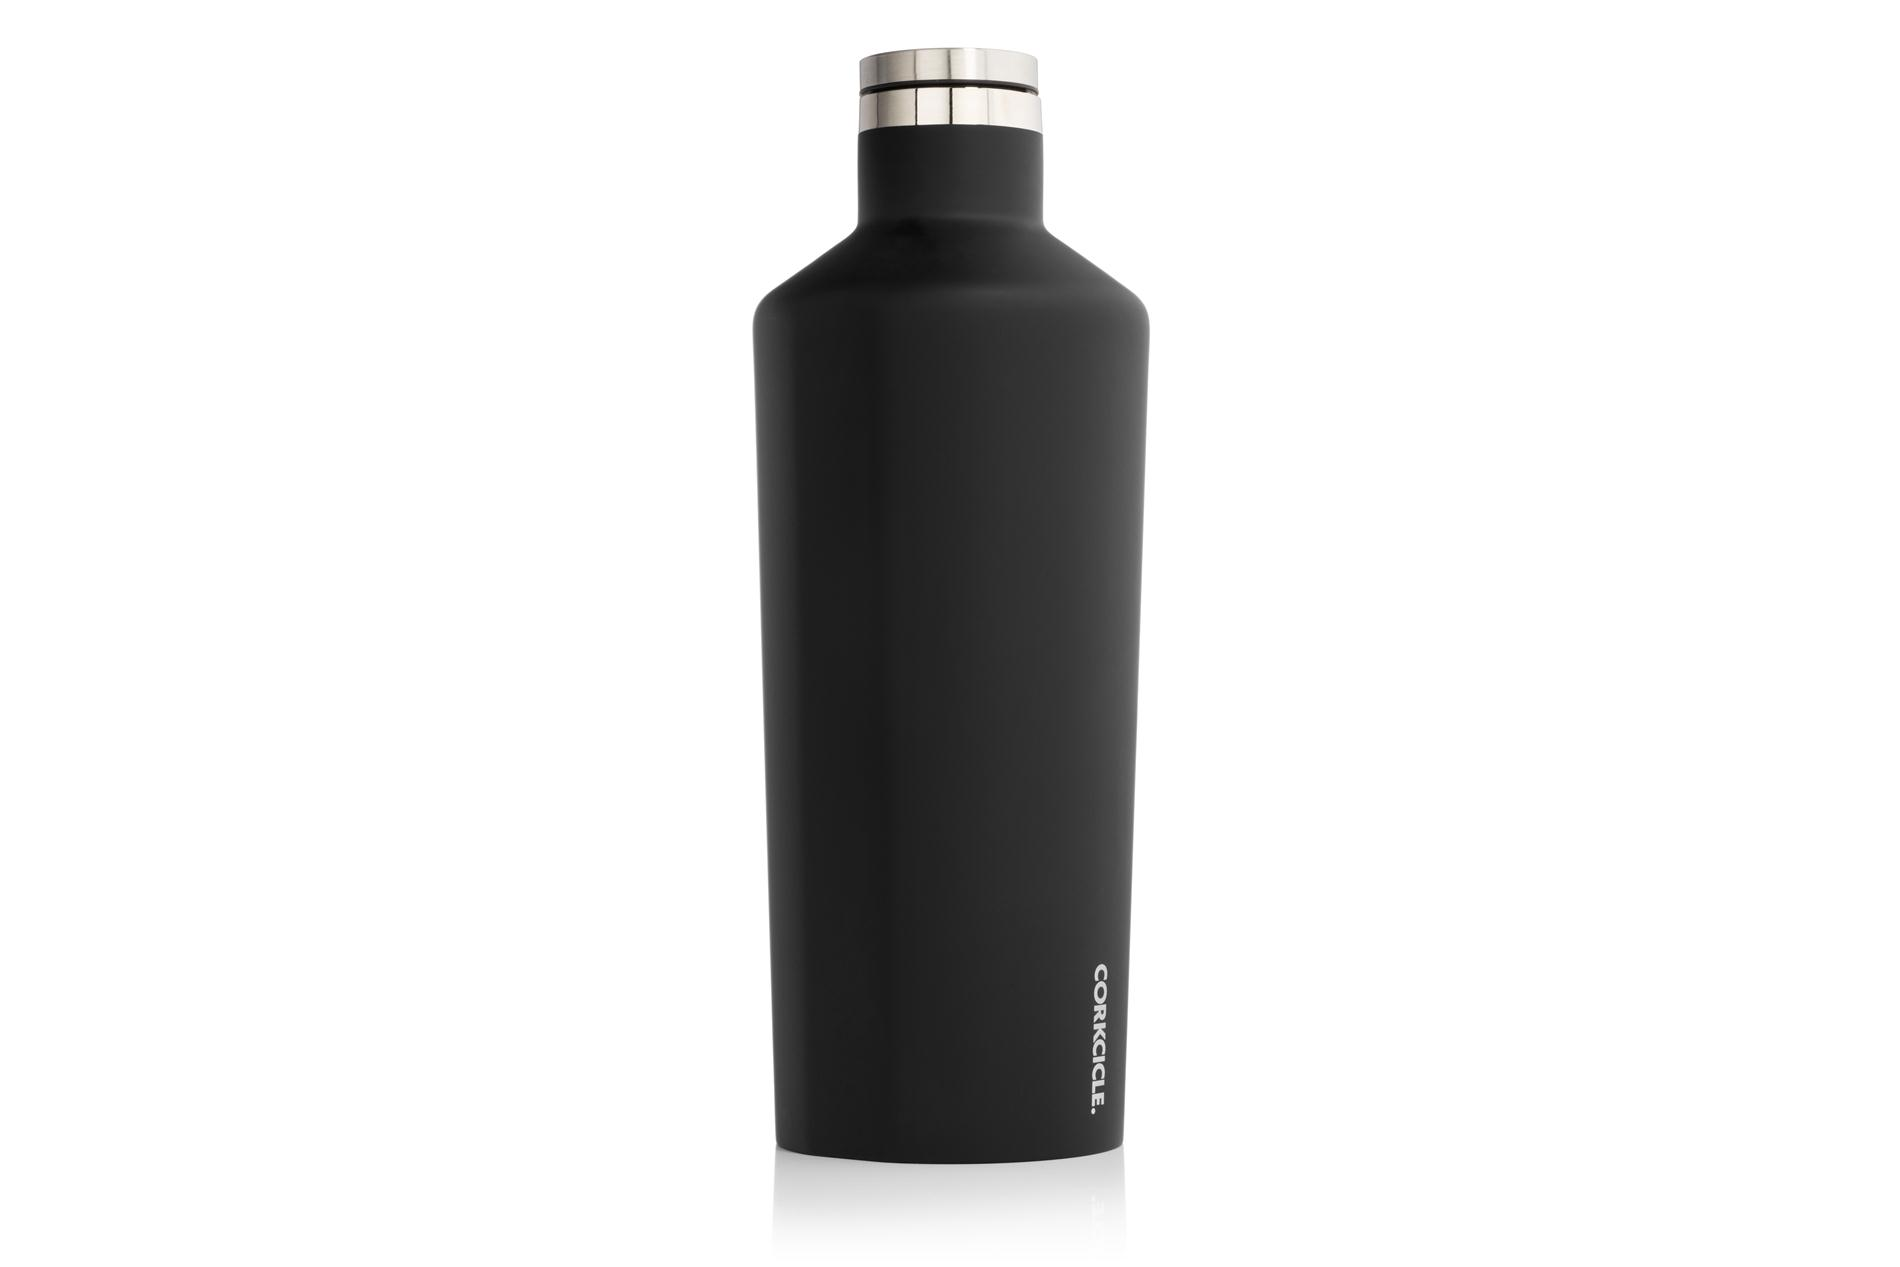 Corkcicle Trinkflasche / Thermo Isolierflasche Matte Black 1775 ml Classic